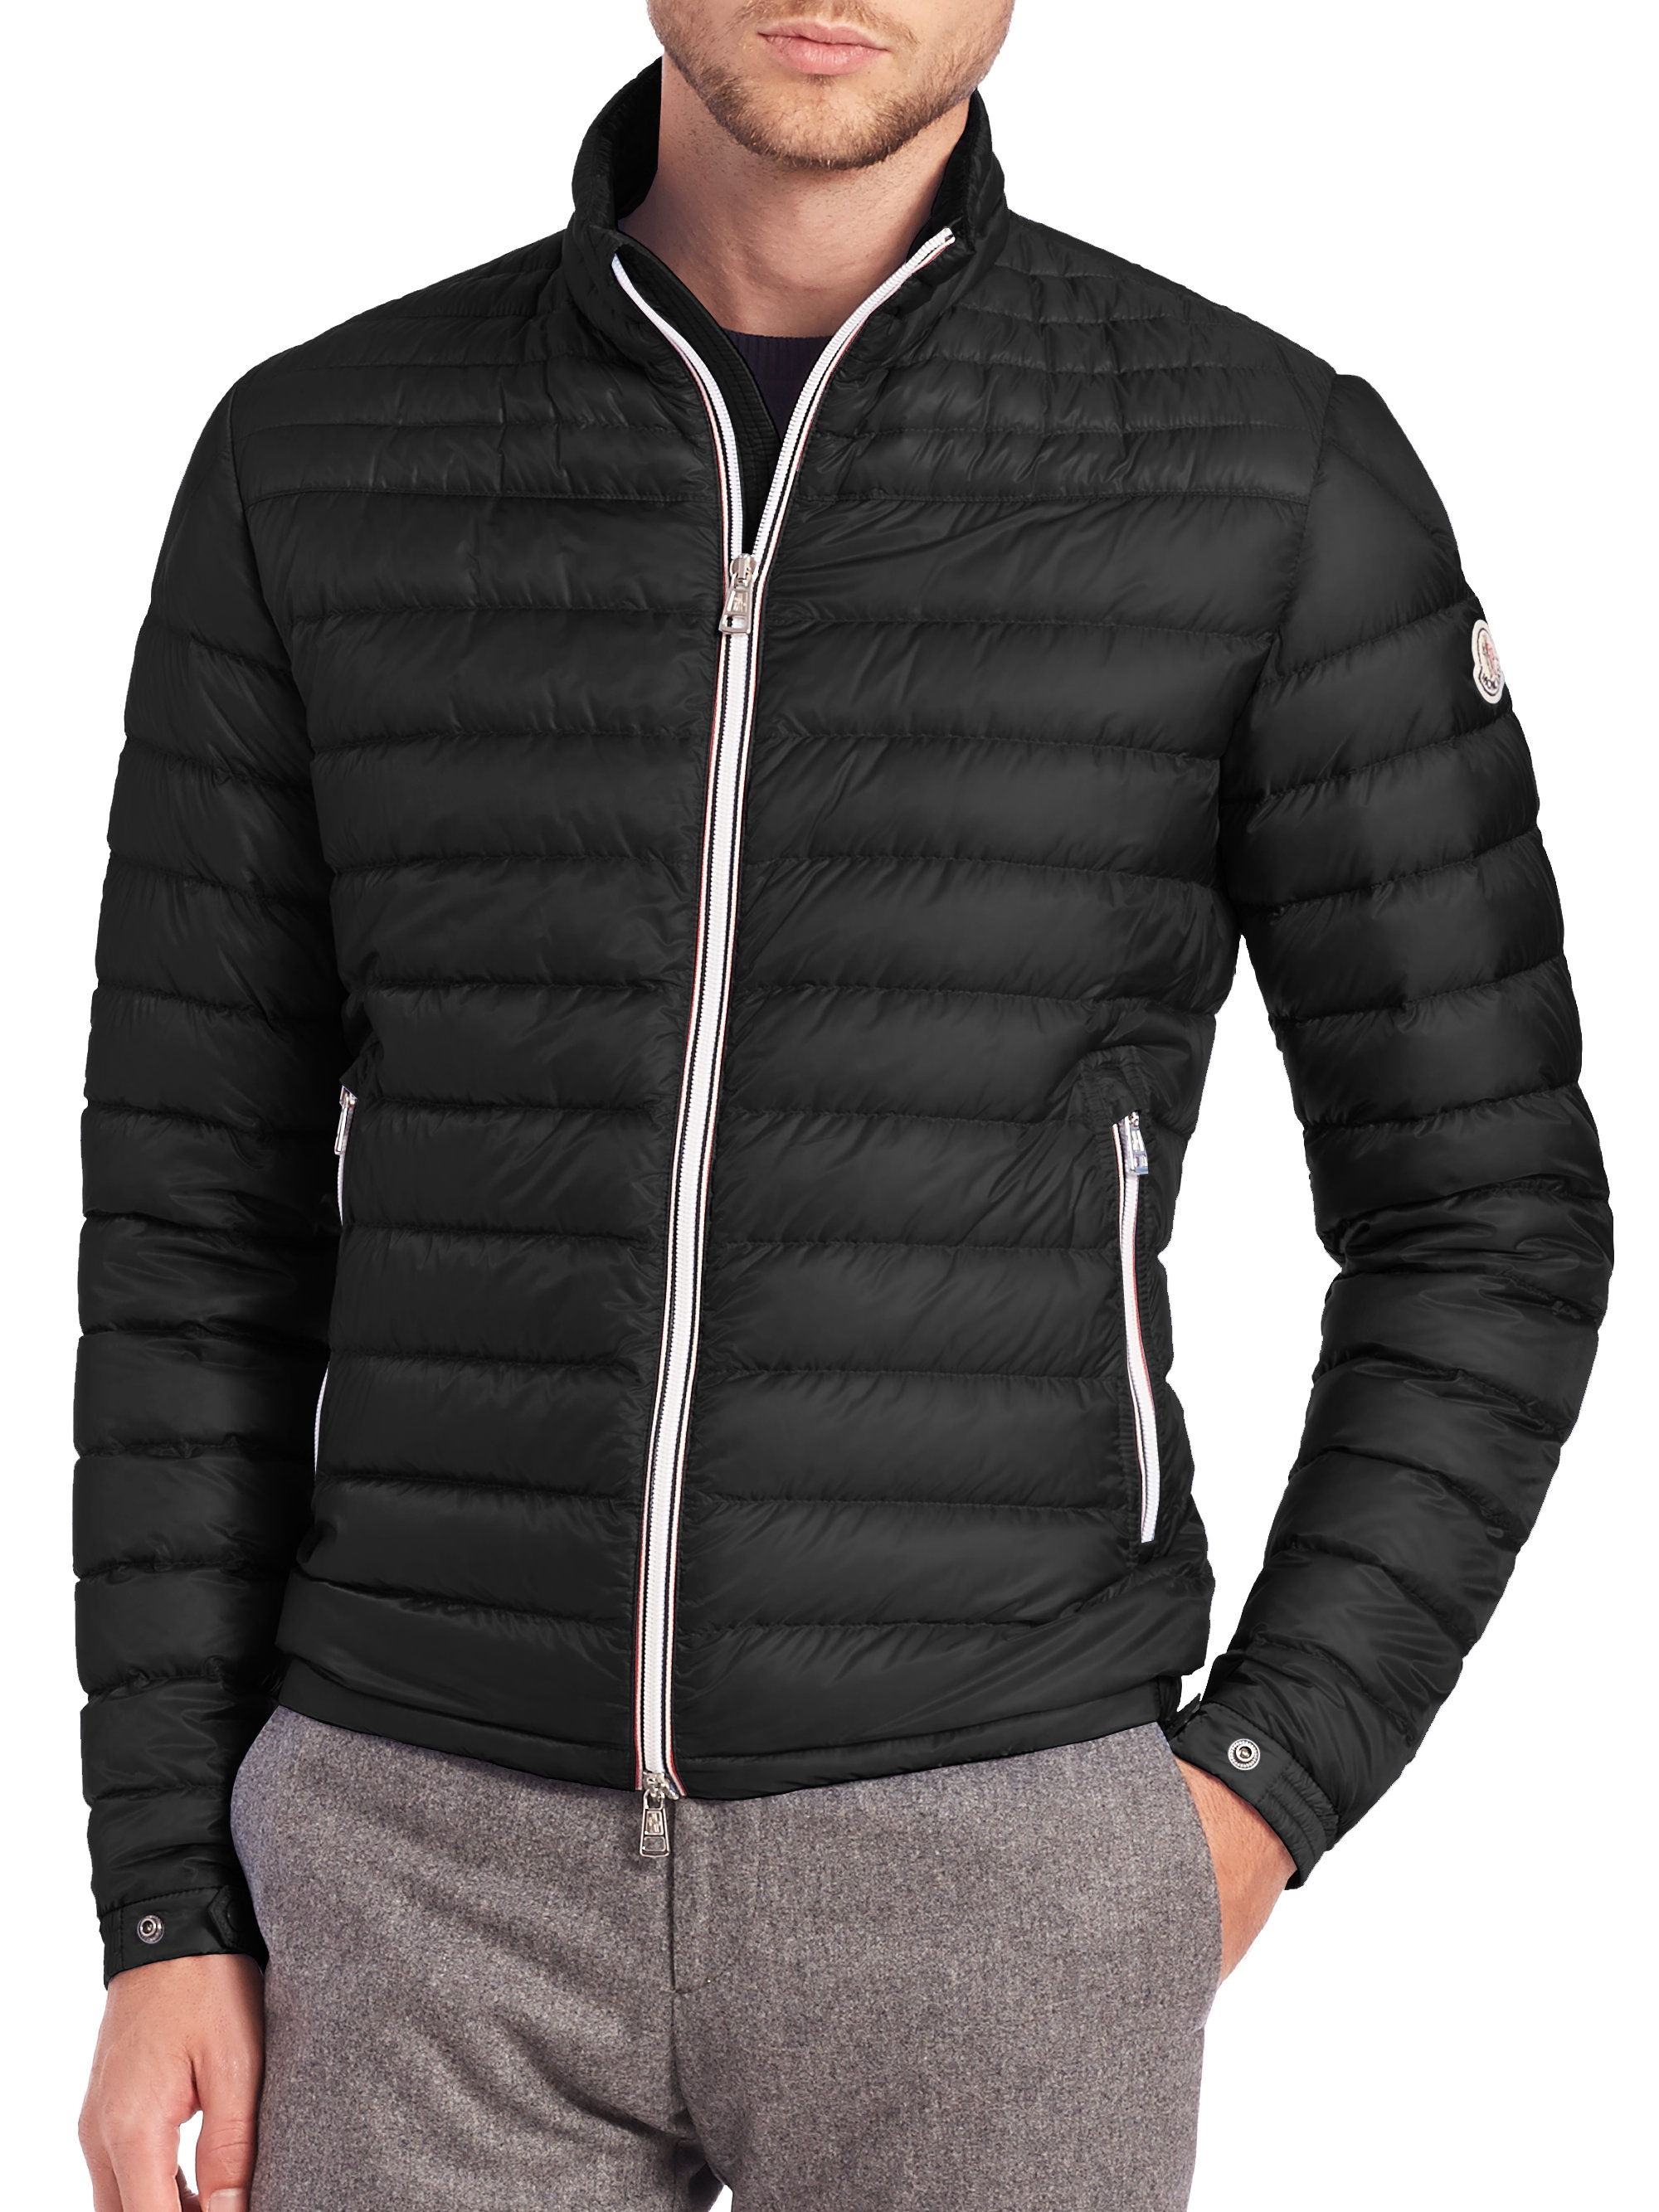 moncler daniel jacket in black for men lyst. Black Bedroom Furniture Sets. Home Design Ideas